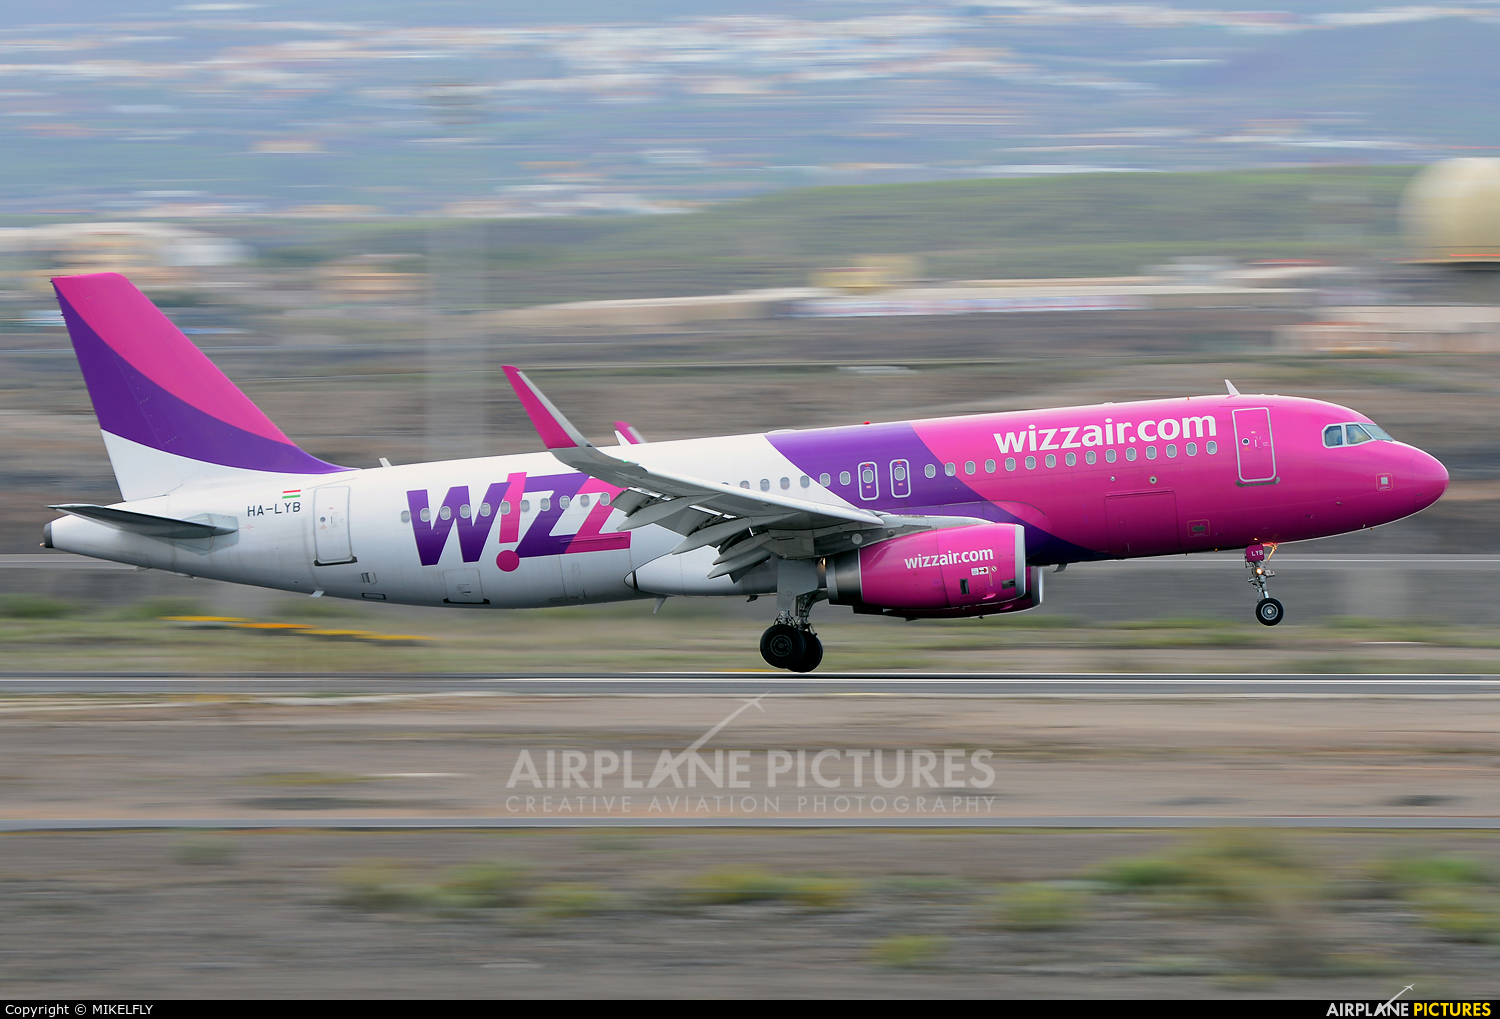 Wizz Air HA-LYB aircraft at Tenerife Sur - Reina Sofia